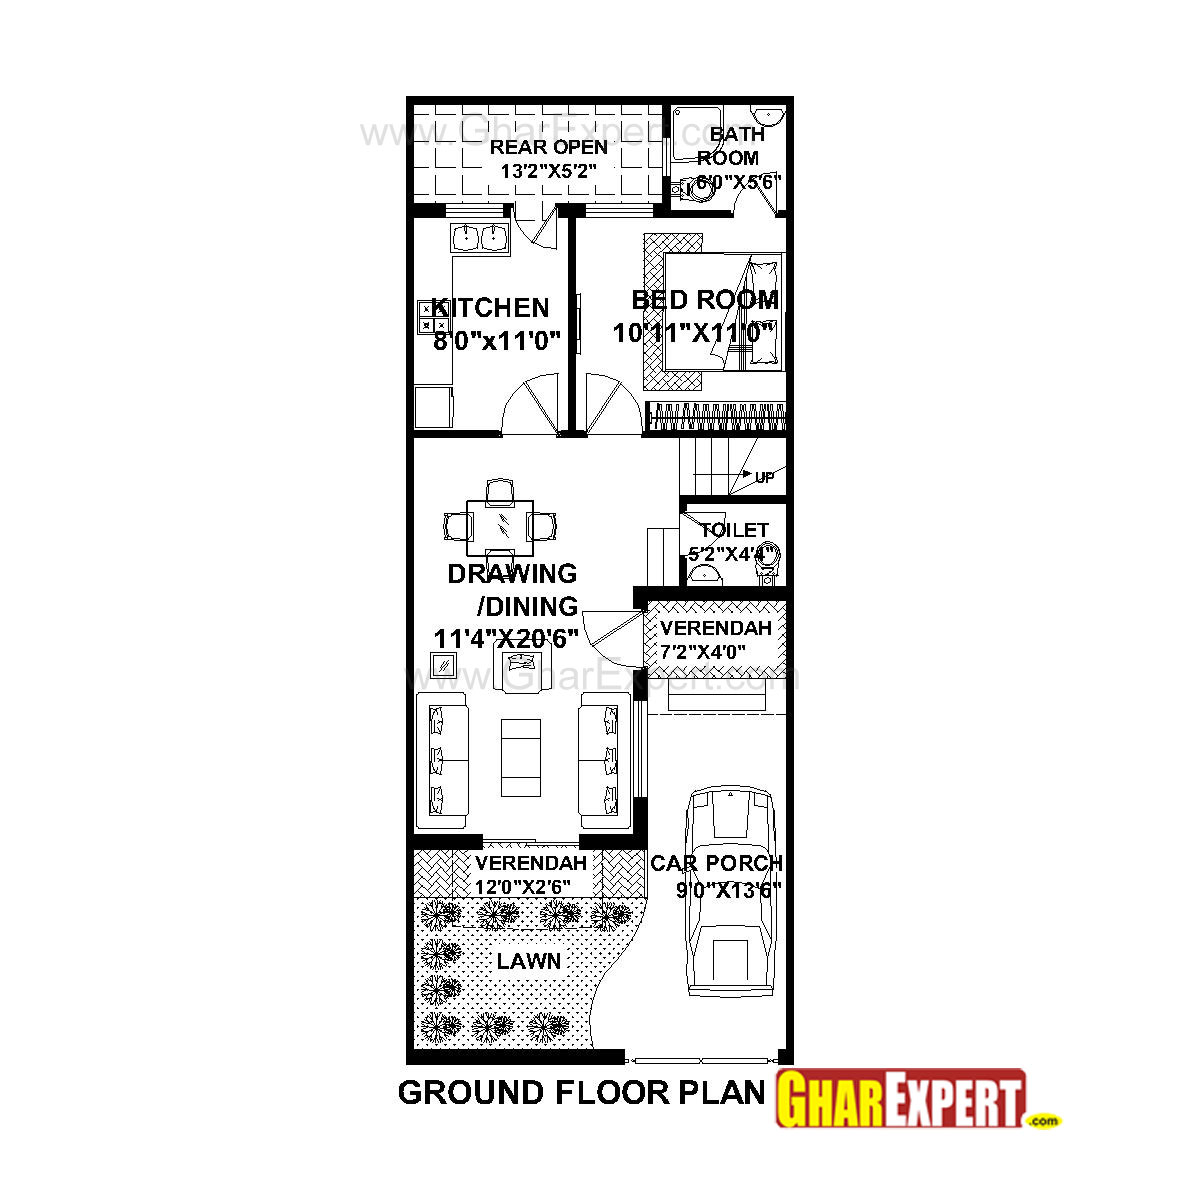 House Plan for 20 Feet by 50 Feet plot (Plot Size 111